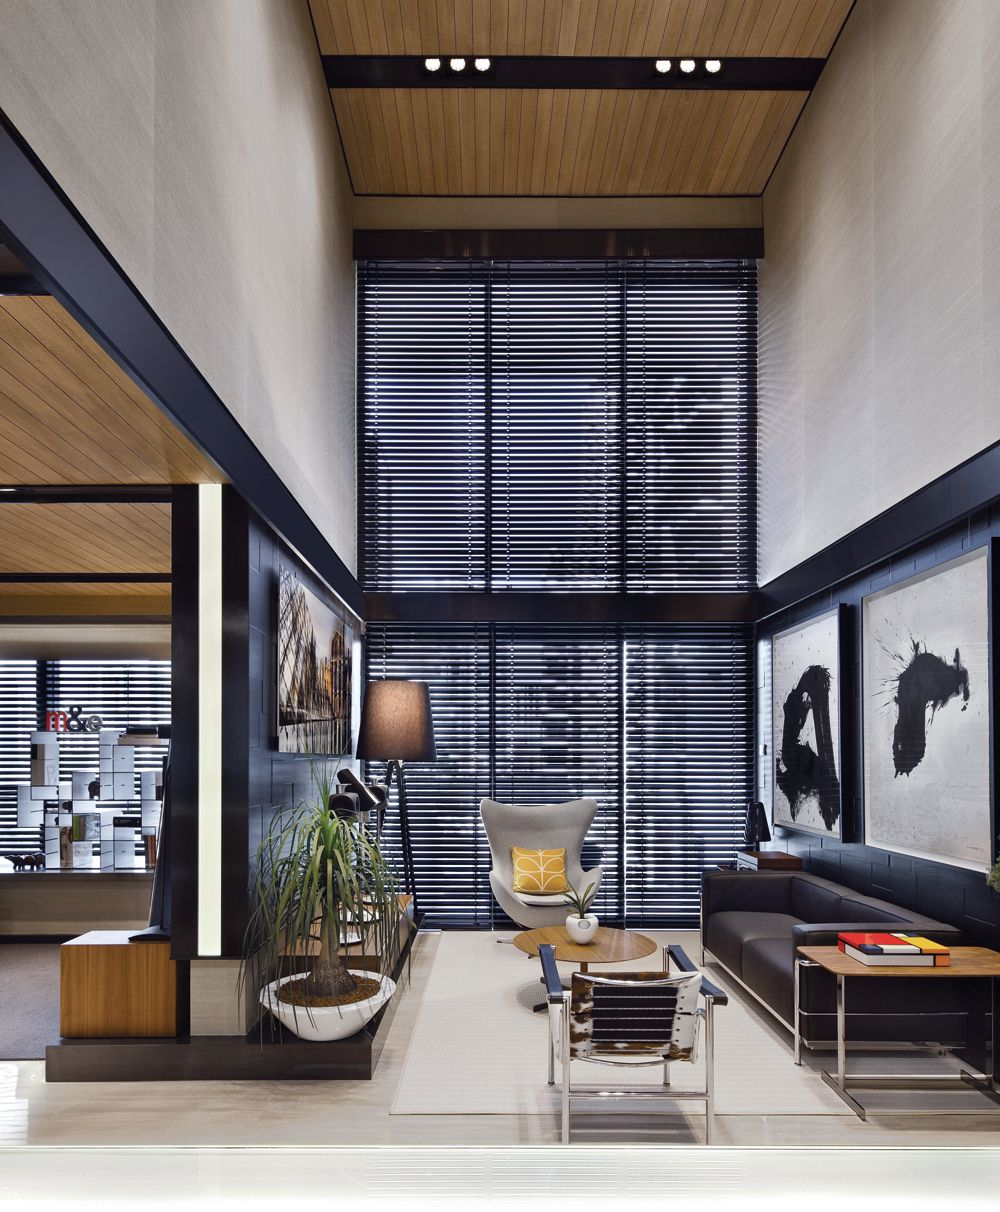 Minimalist Home Decor - Check Out This Singapore Home ...